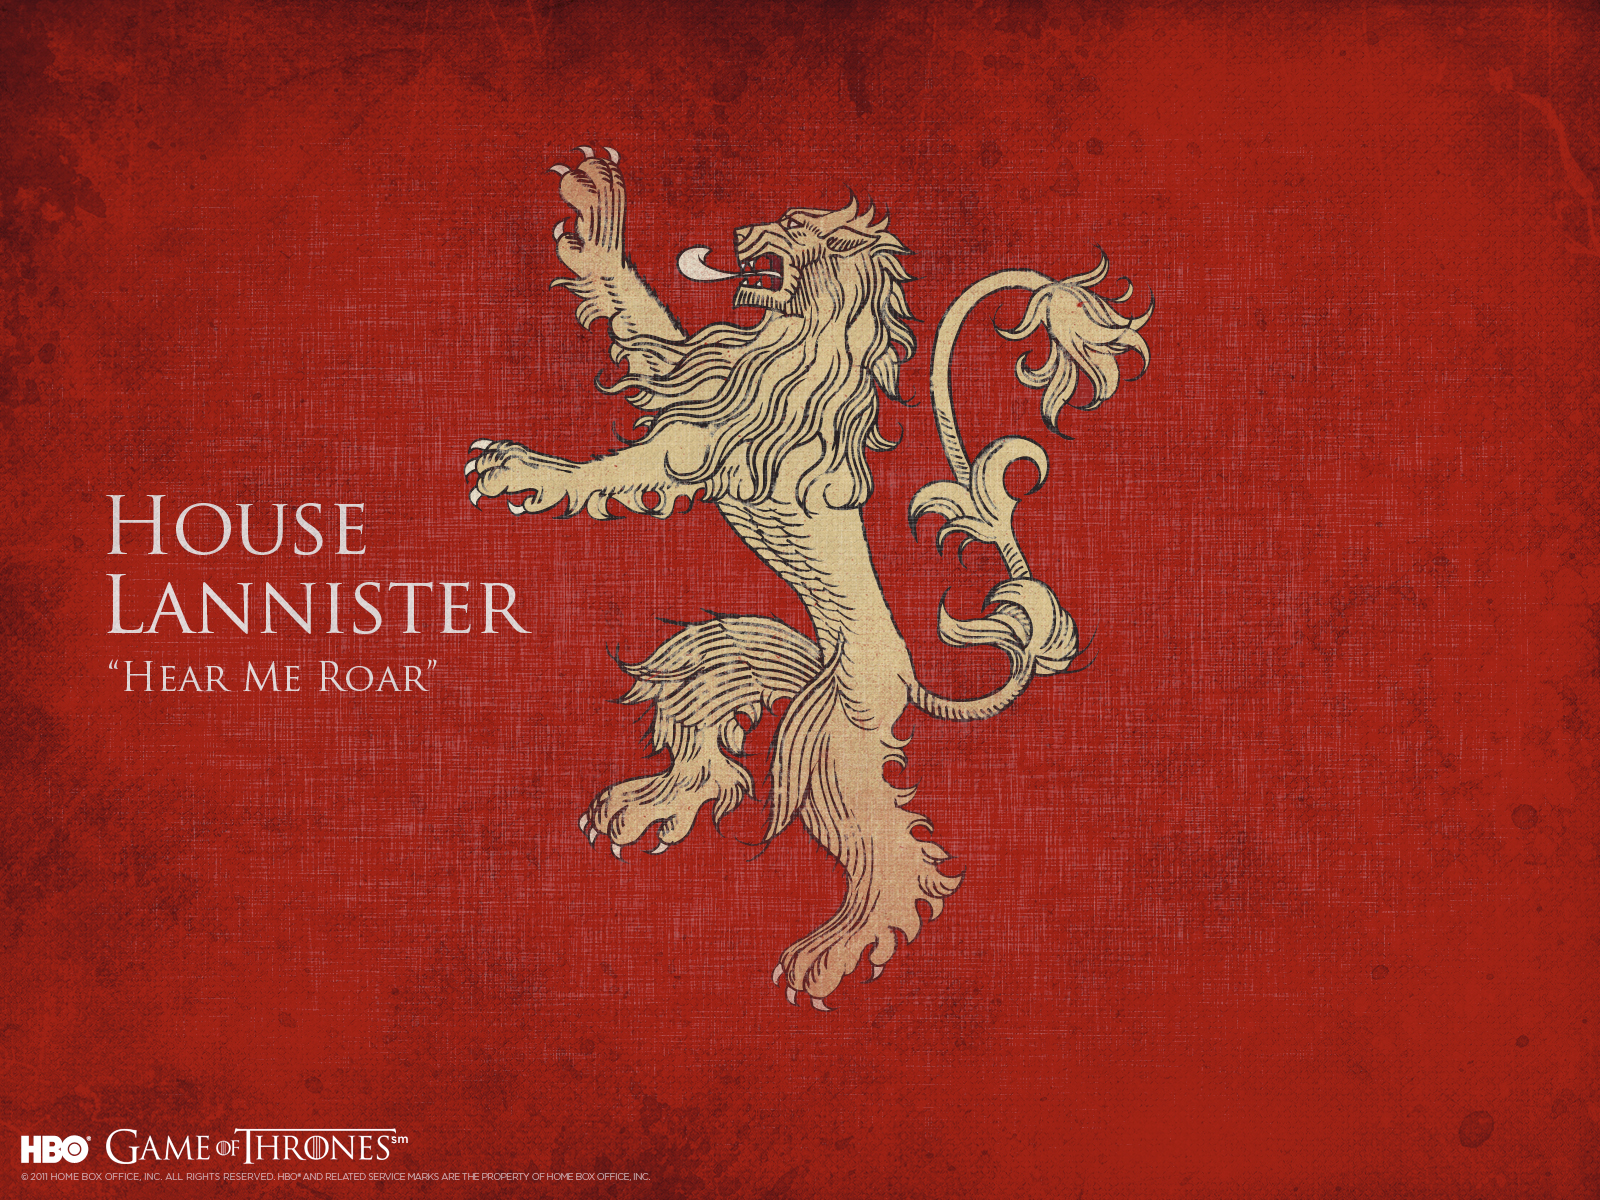 game of thrones house lannister wallpaper game of thrones. Black Bedroom Furniture Sets. Home Design Ideas